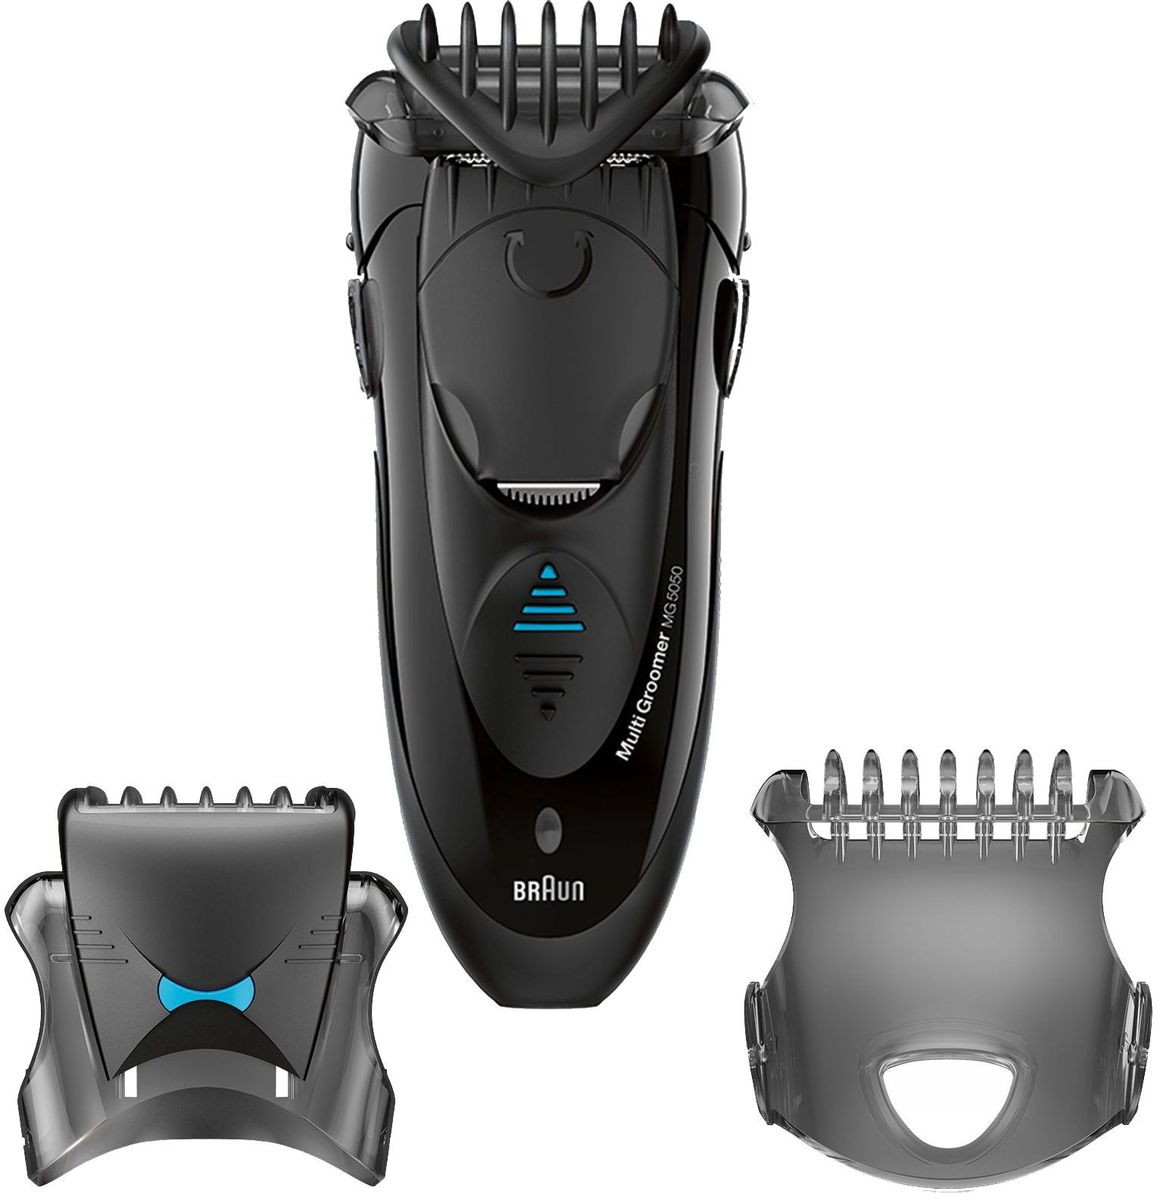 Braun Multi Groomer MG5050 электробритва